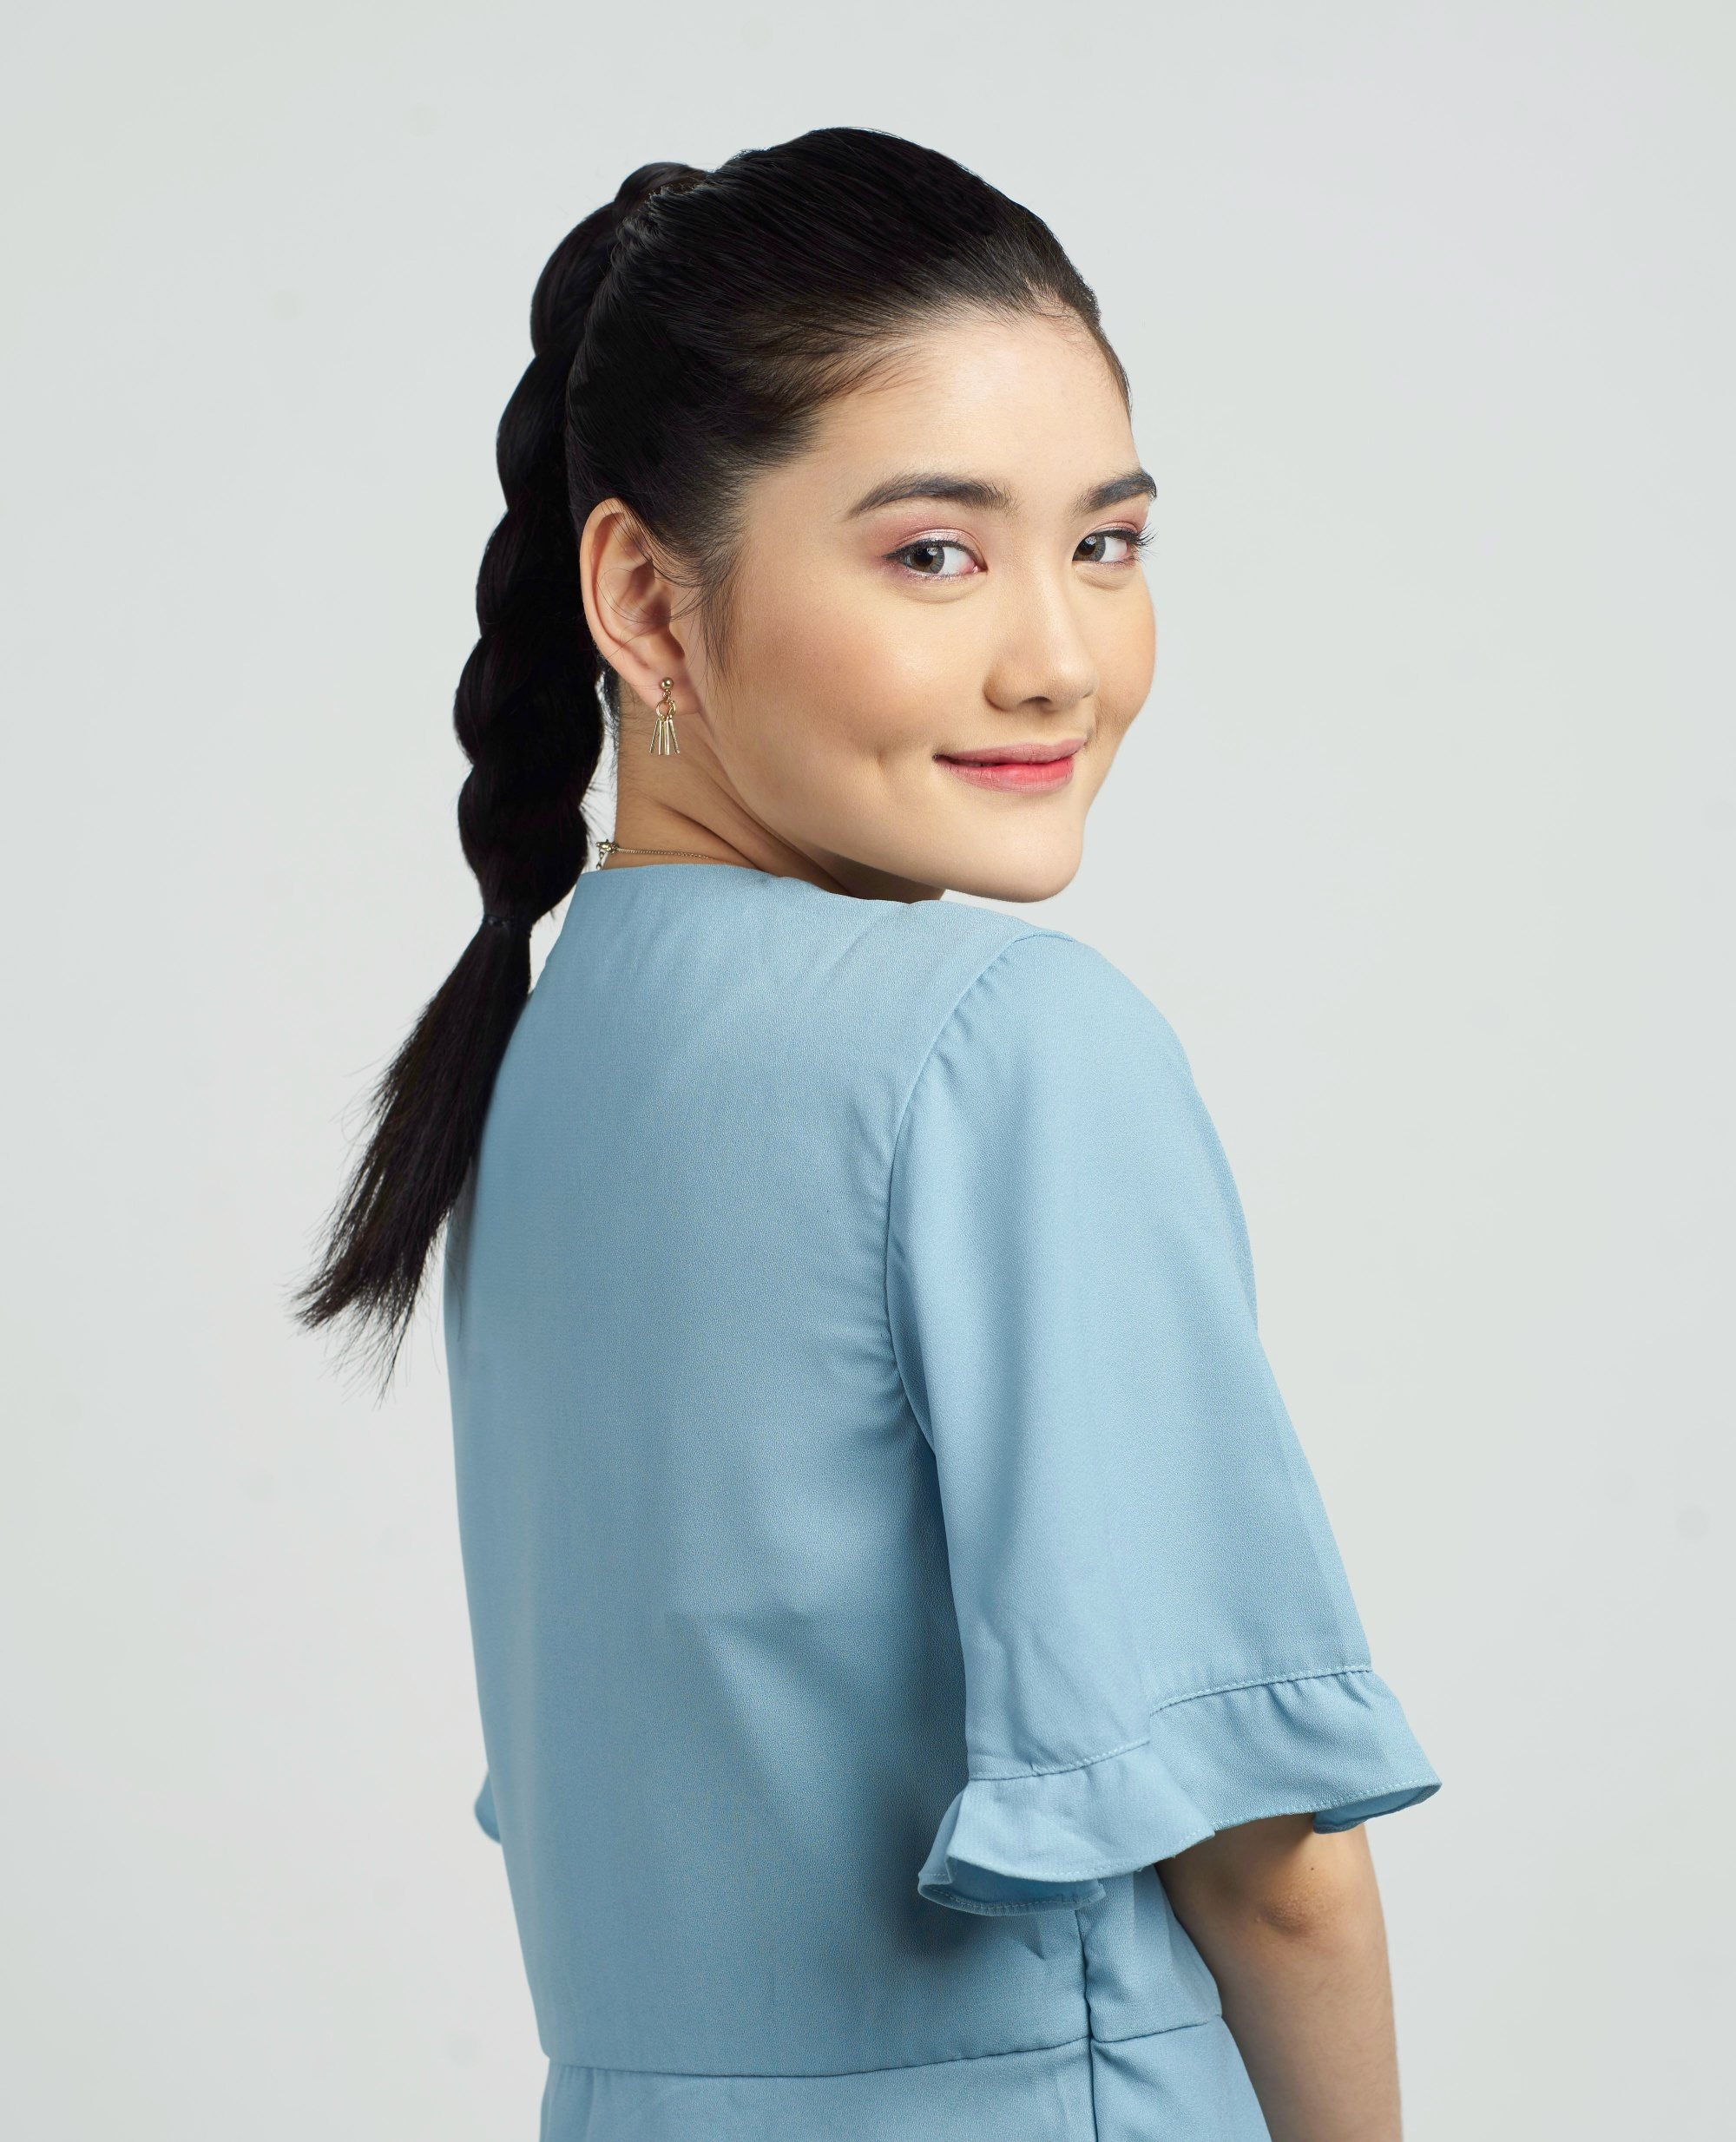 Summer braids: Asian woman with long black hair in a braid ponytail wearing a blue blouse